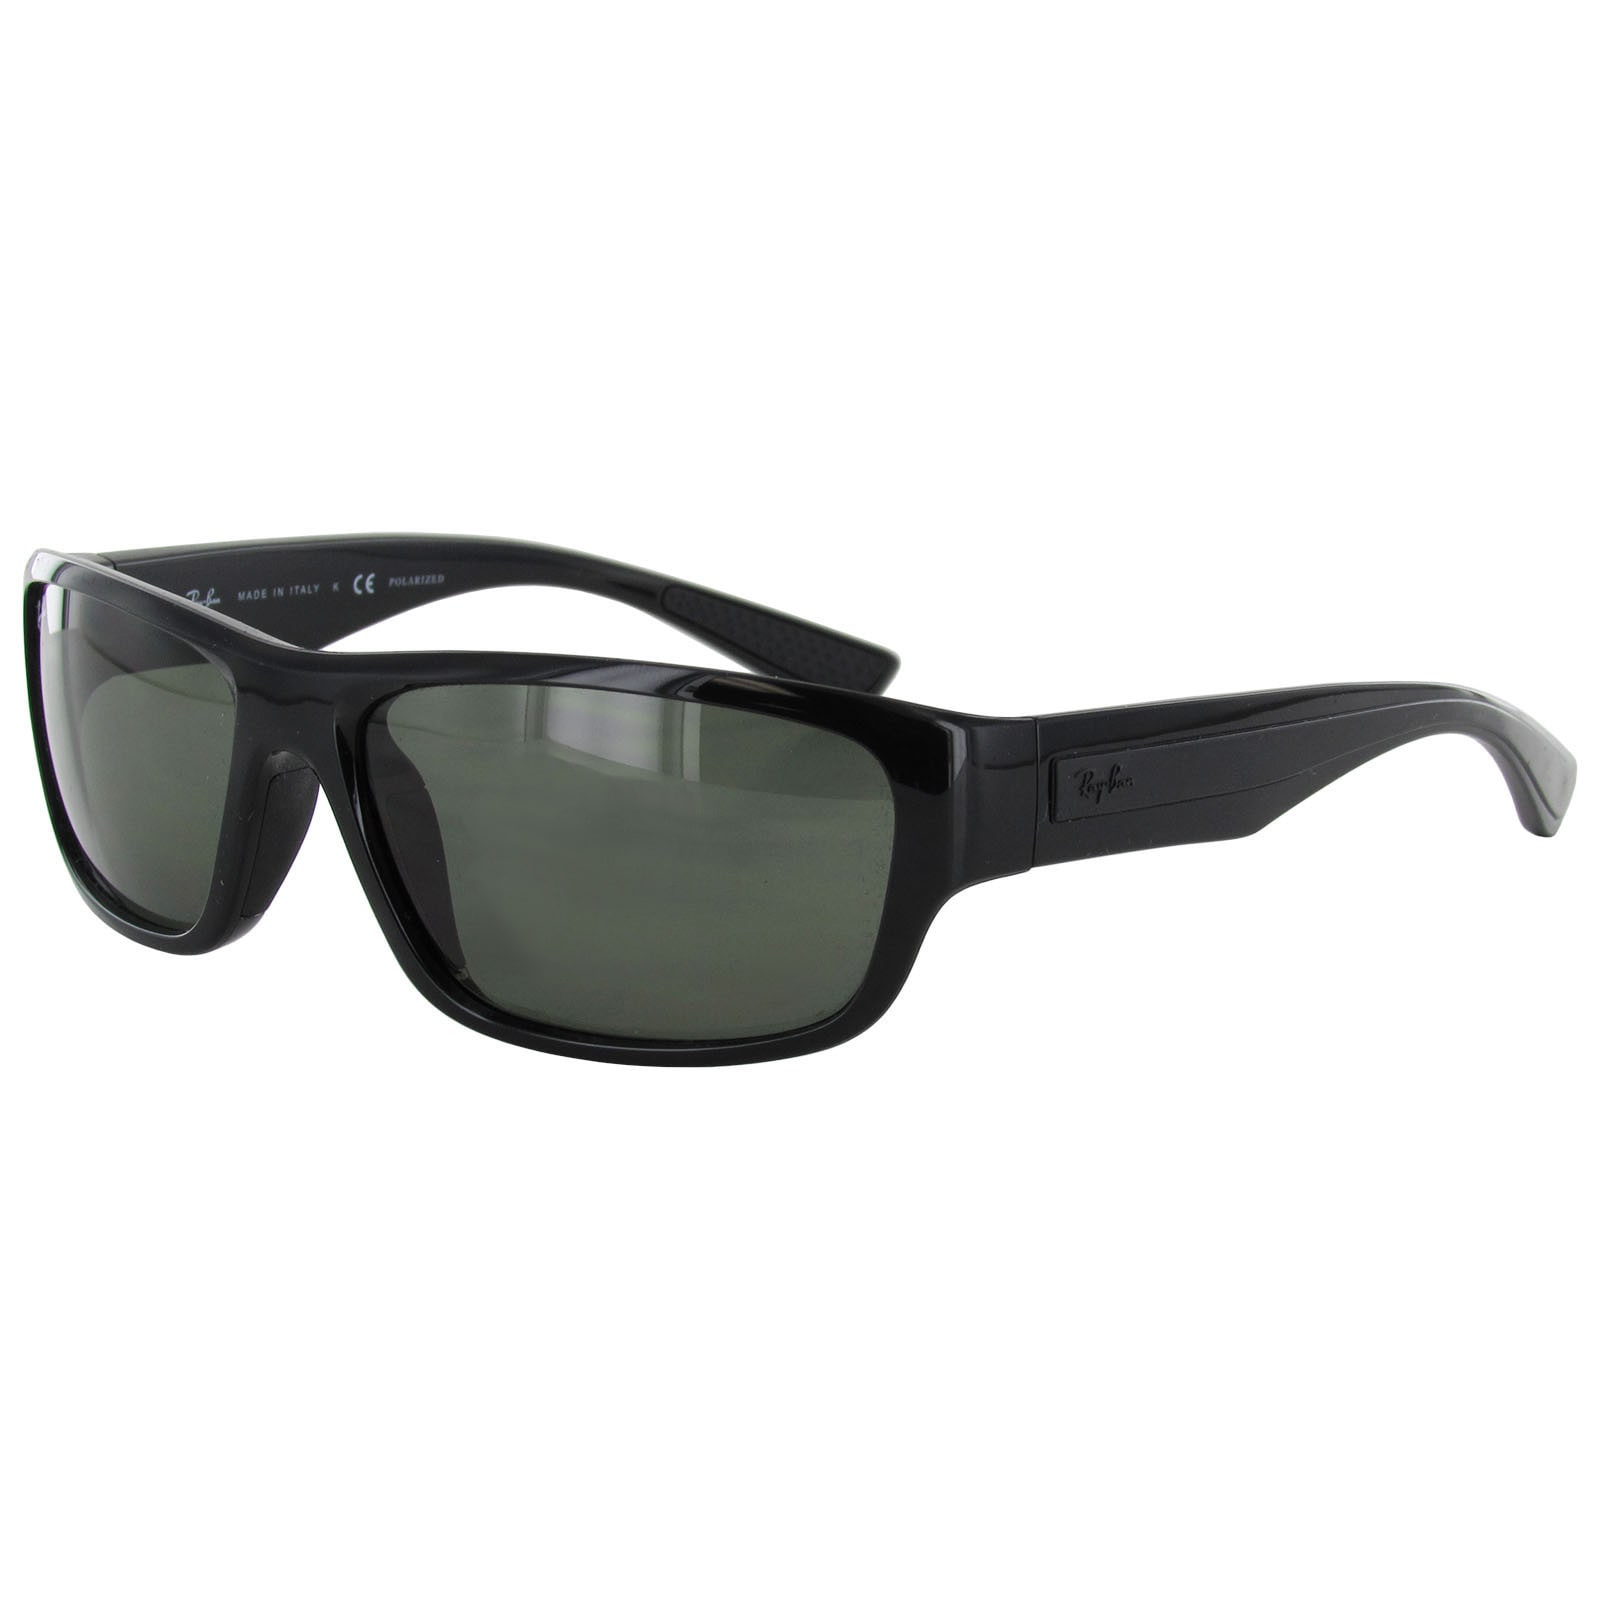 4cffcb3edc Shop Ray Ban Mens 4196-601 9A Active Performance Sporty Polarized  Sungalsses - Free Shipping Today - Overstock - 11771595